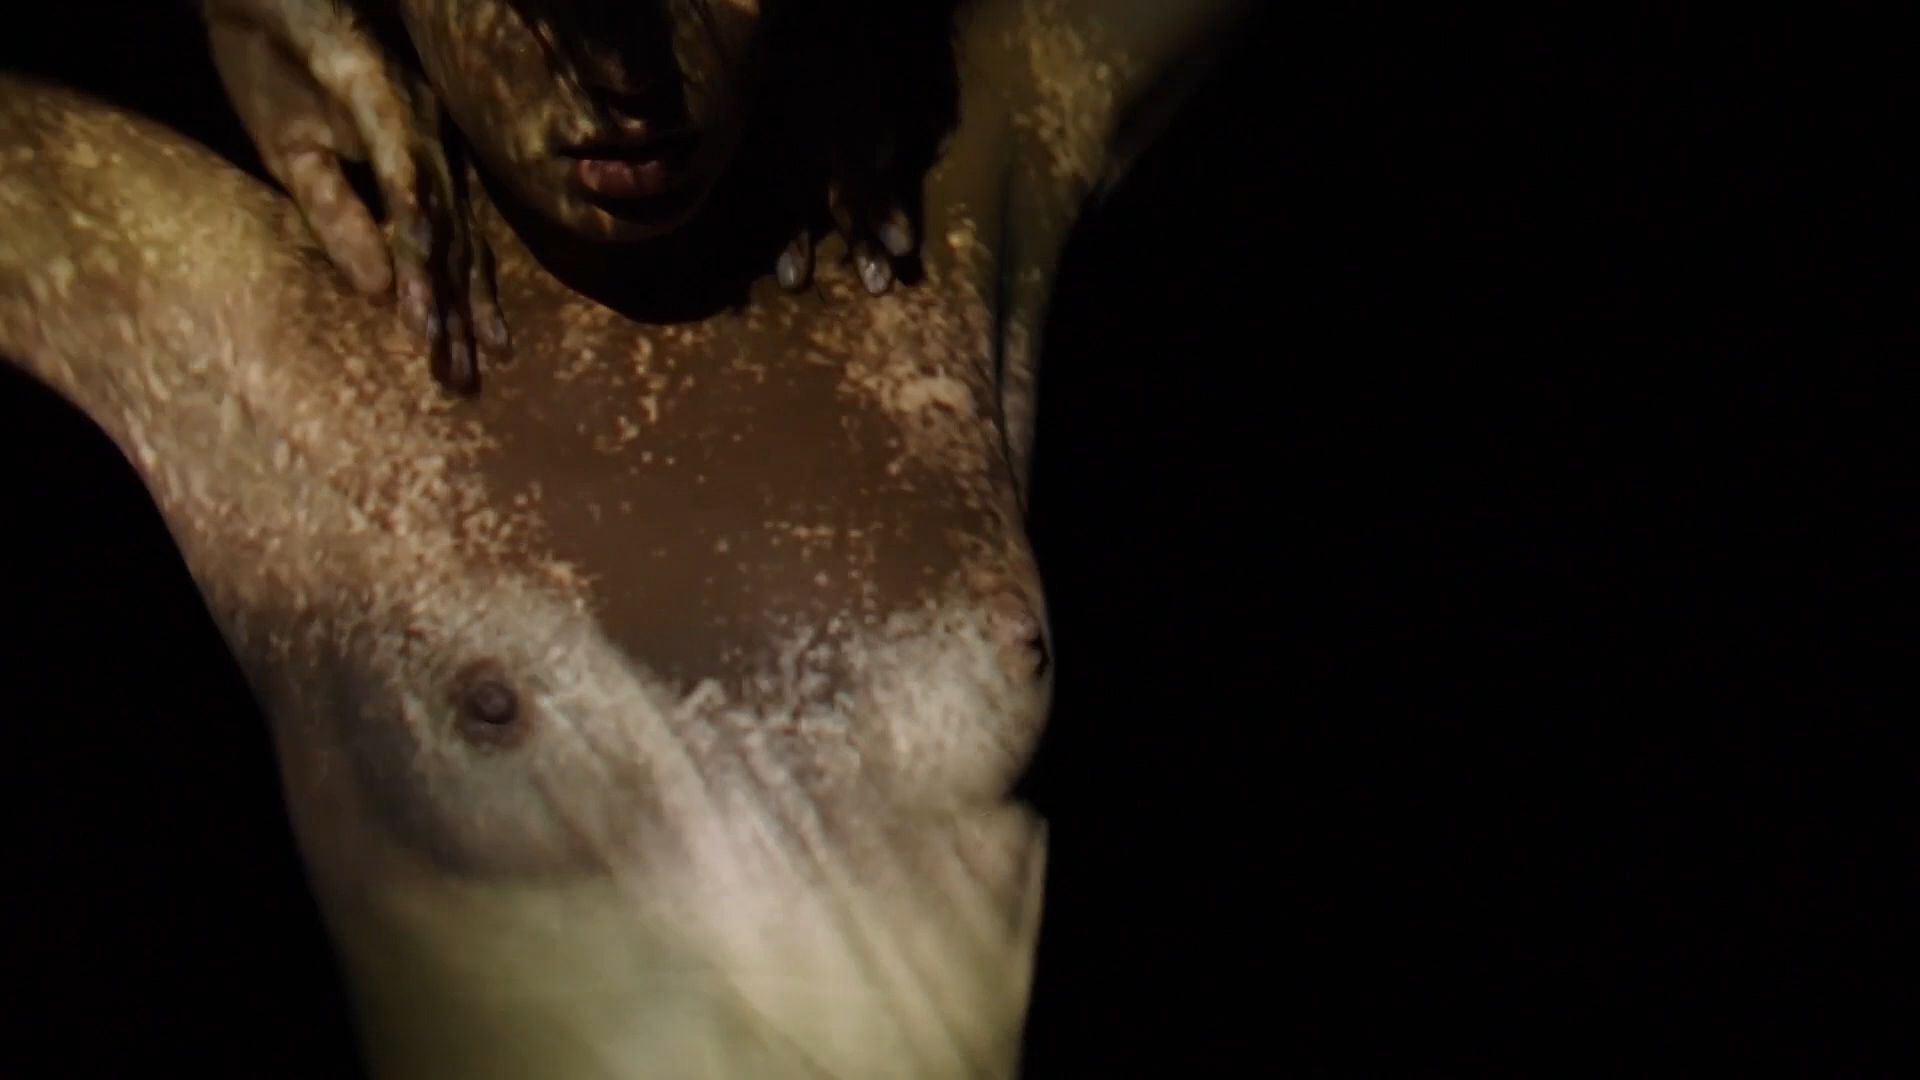 Felicia Porter nude topless and Laura Shields nude - Tunnel Vision (Explicit) - Justin Timberlake hd1080p (6)